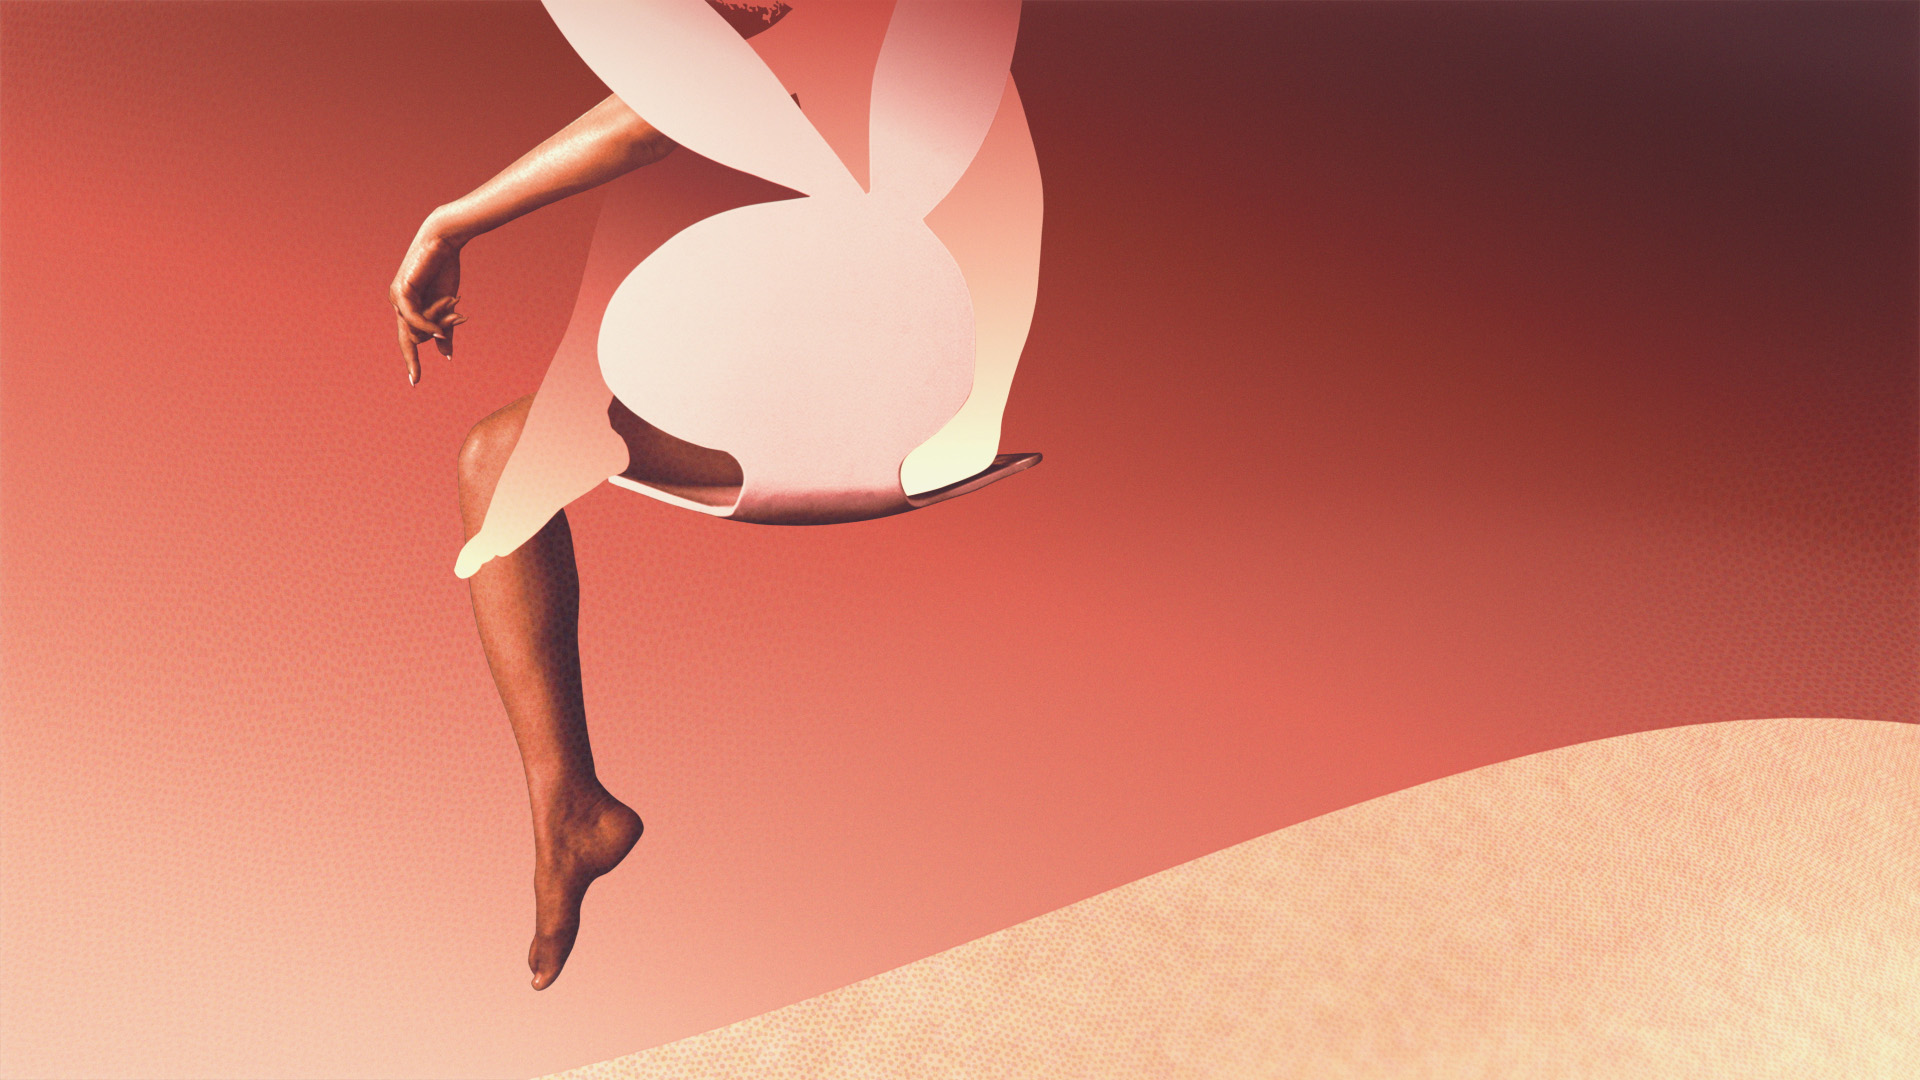 Design style frame 01 for American Playboy: The Hugh Hefner Story main title sequence